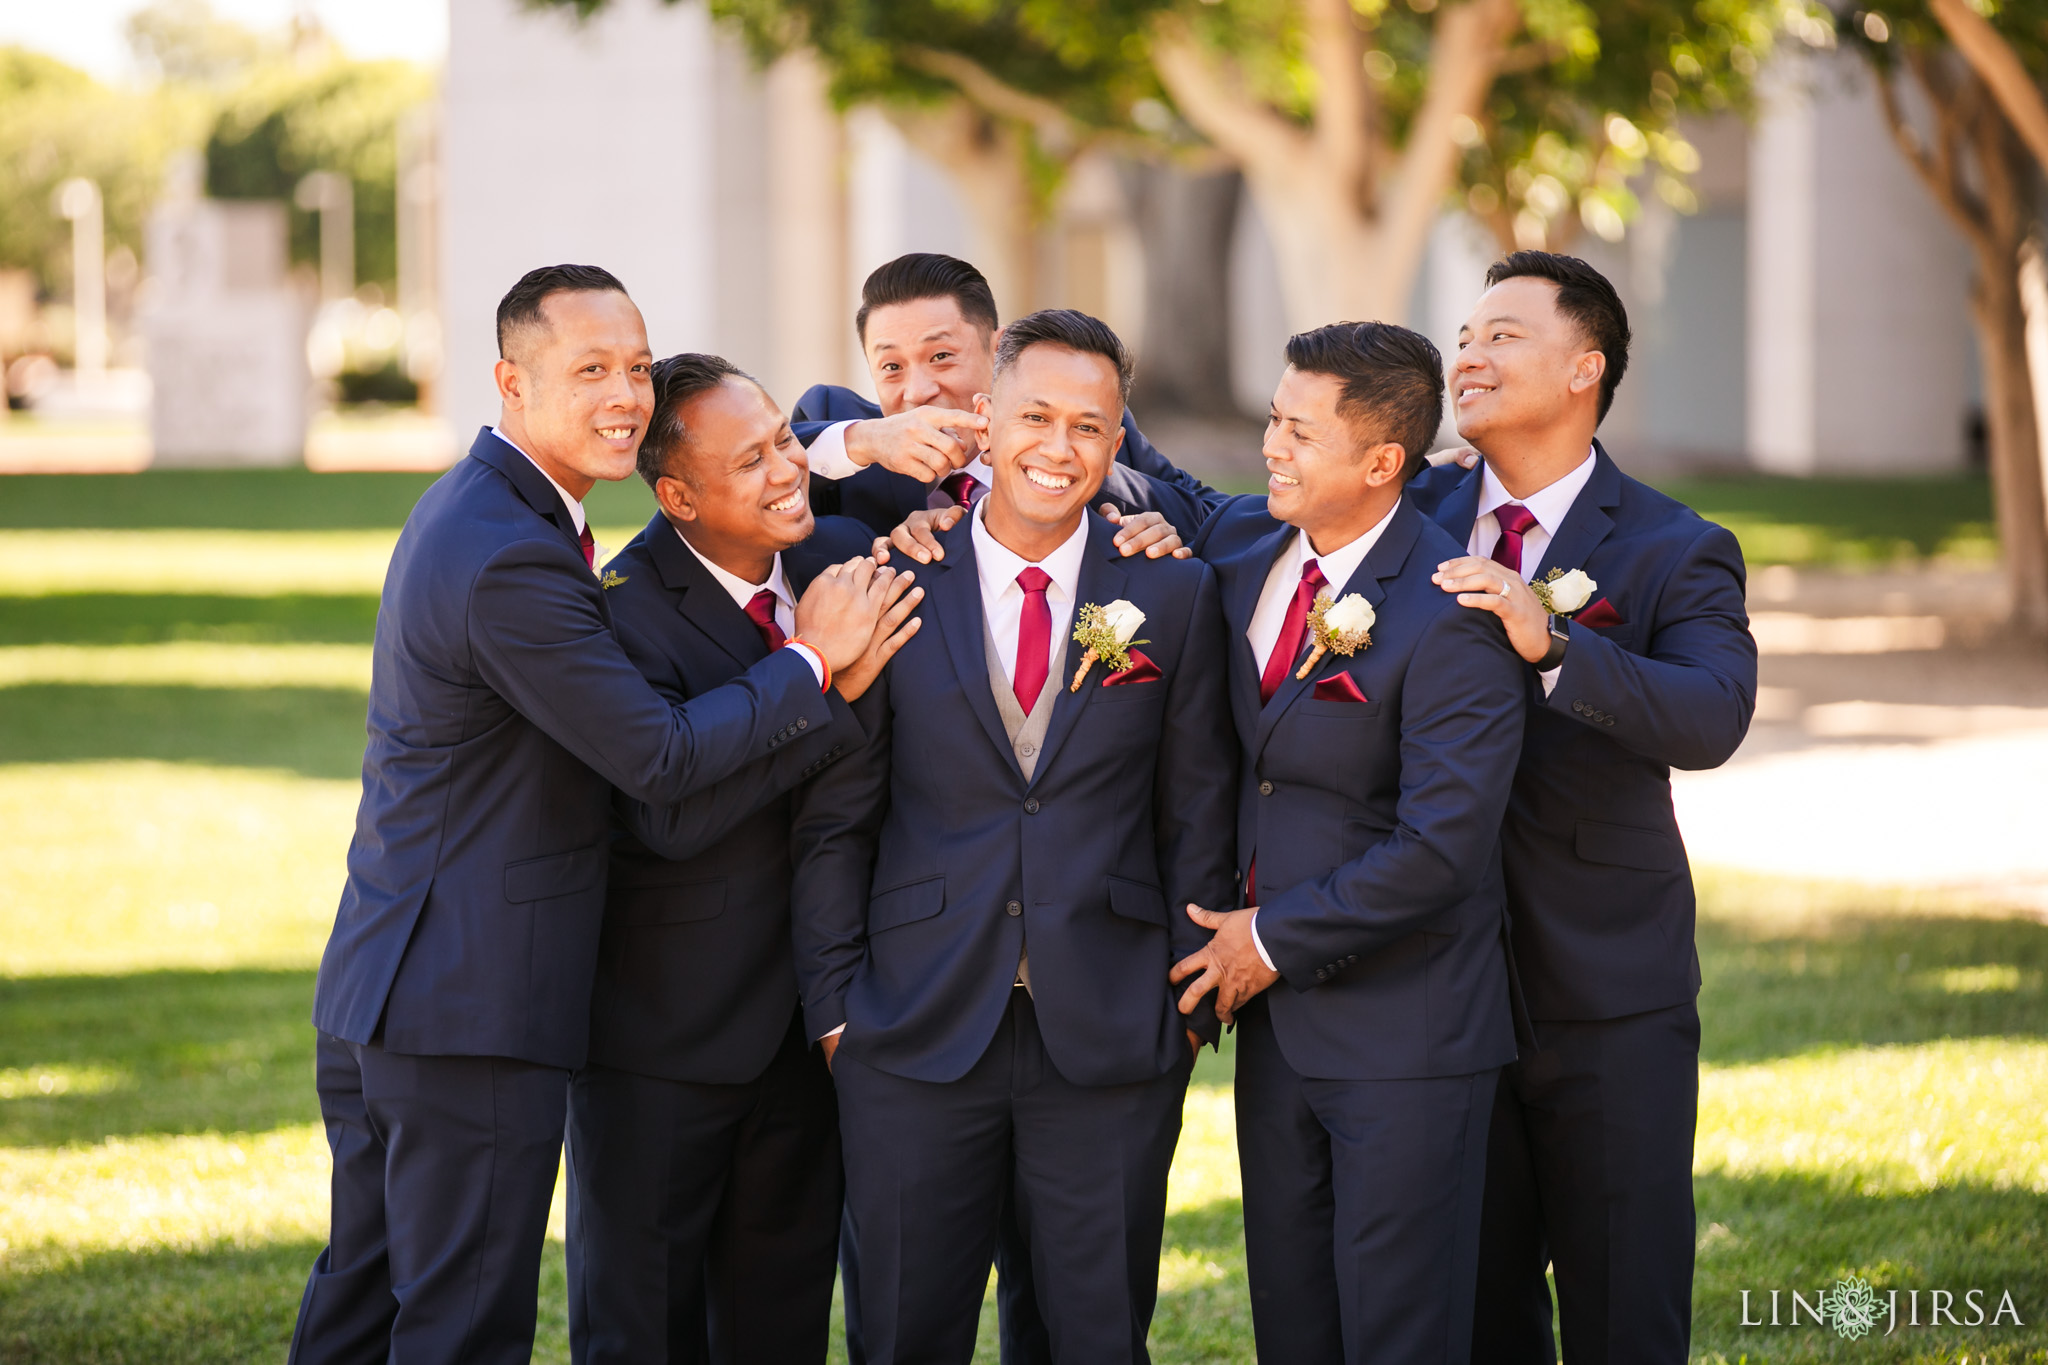 16 Hotel Irvine Orange County Wedding Photography